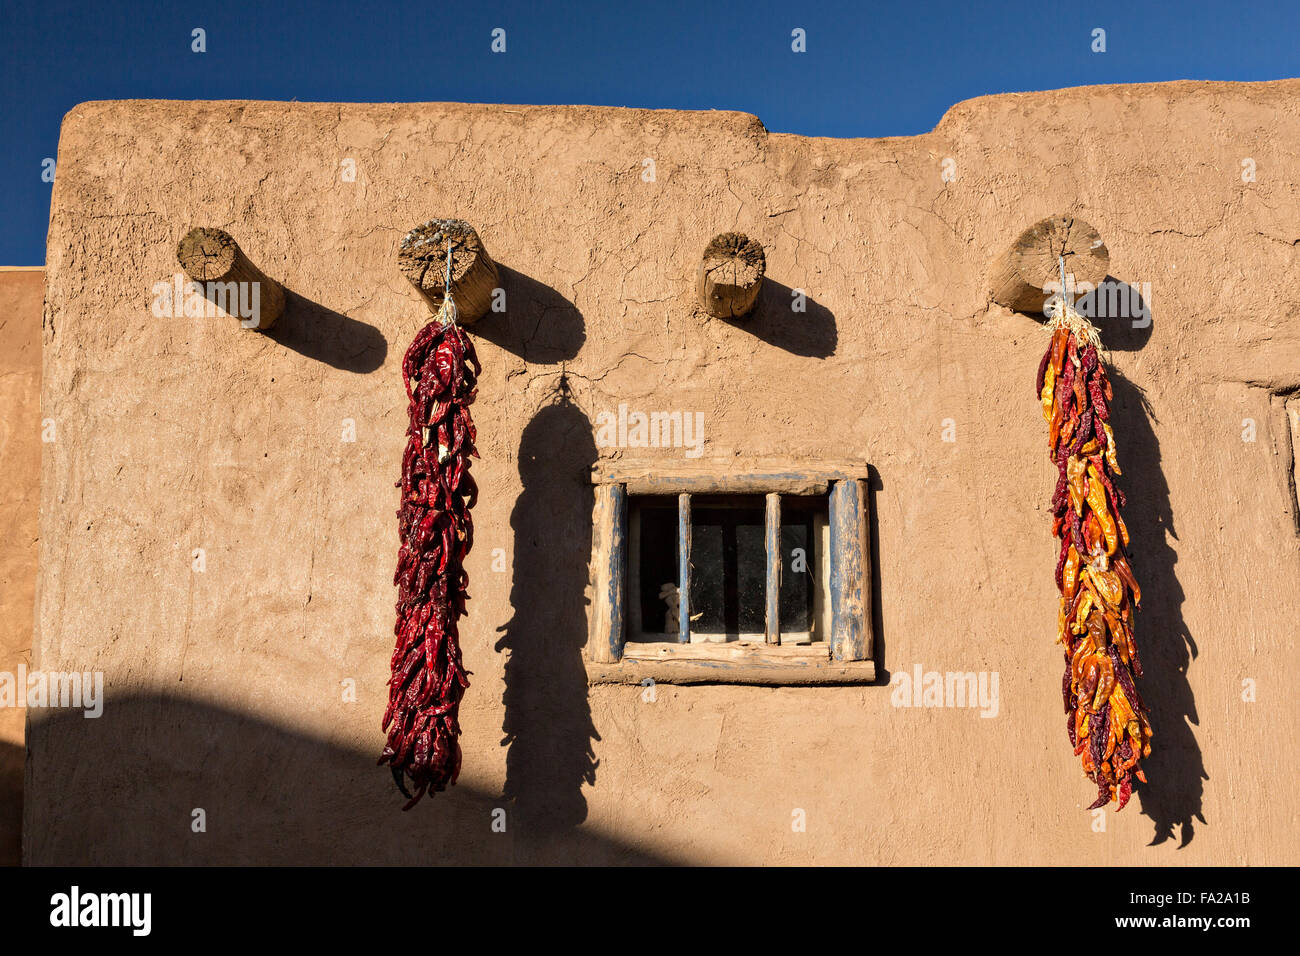 Dried chile pepper ristras hang on an adobe wall at the ancient ...